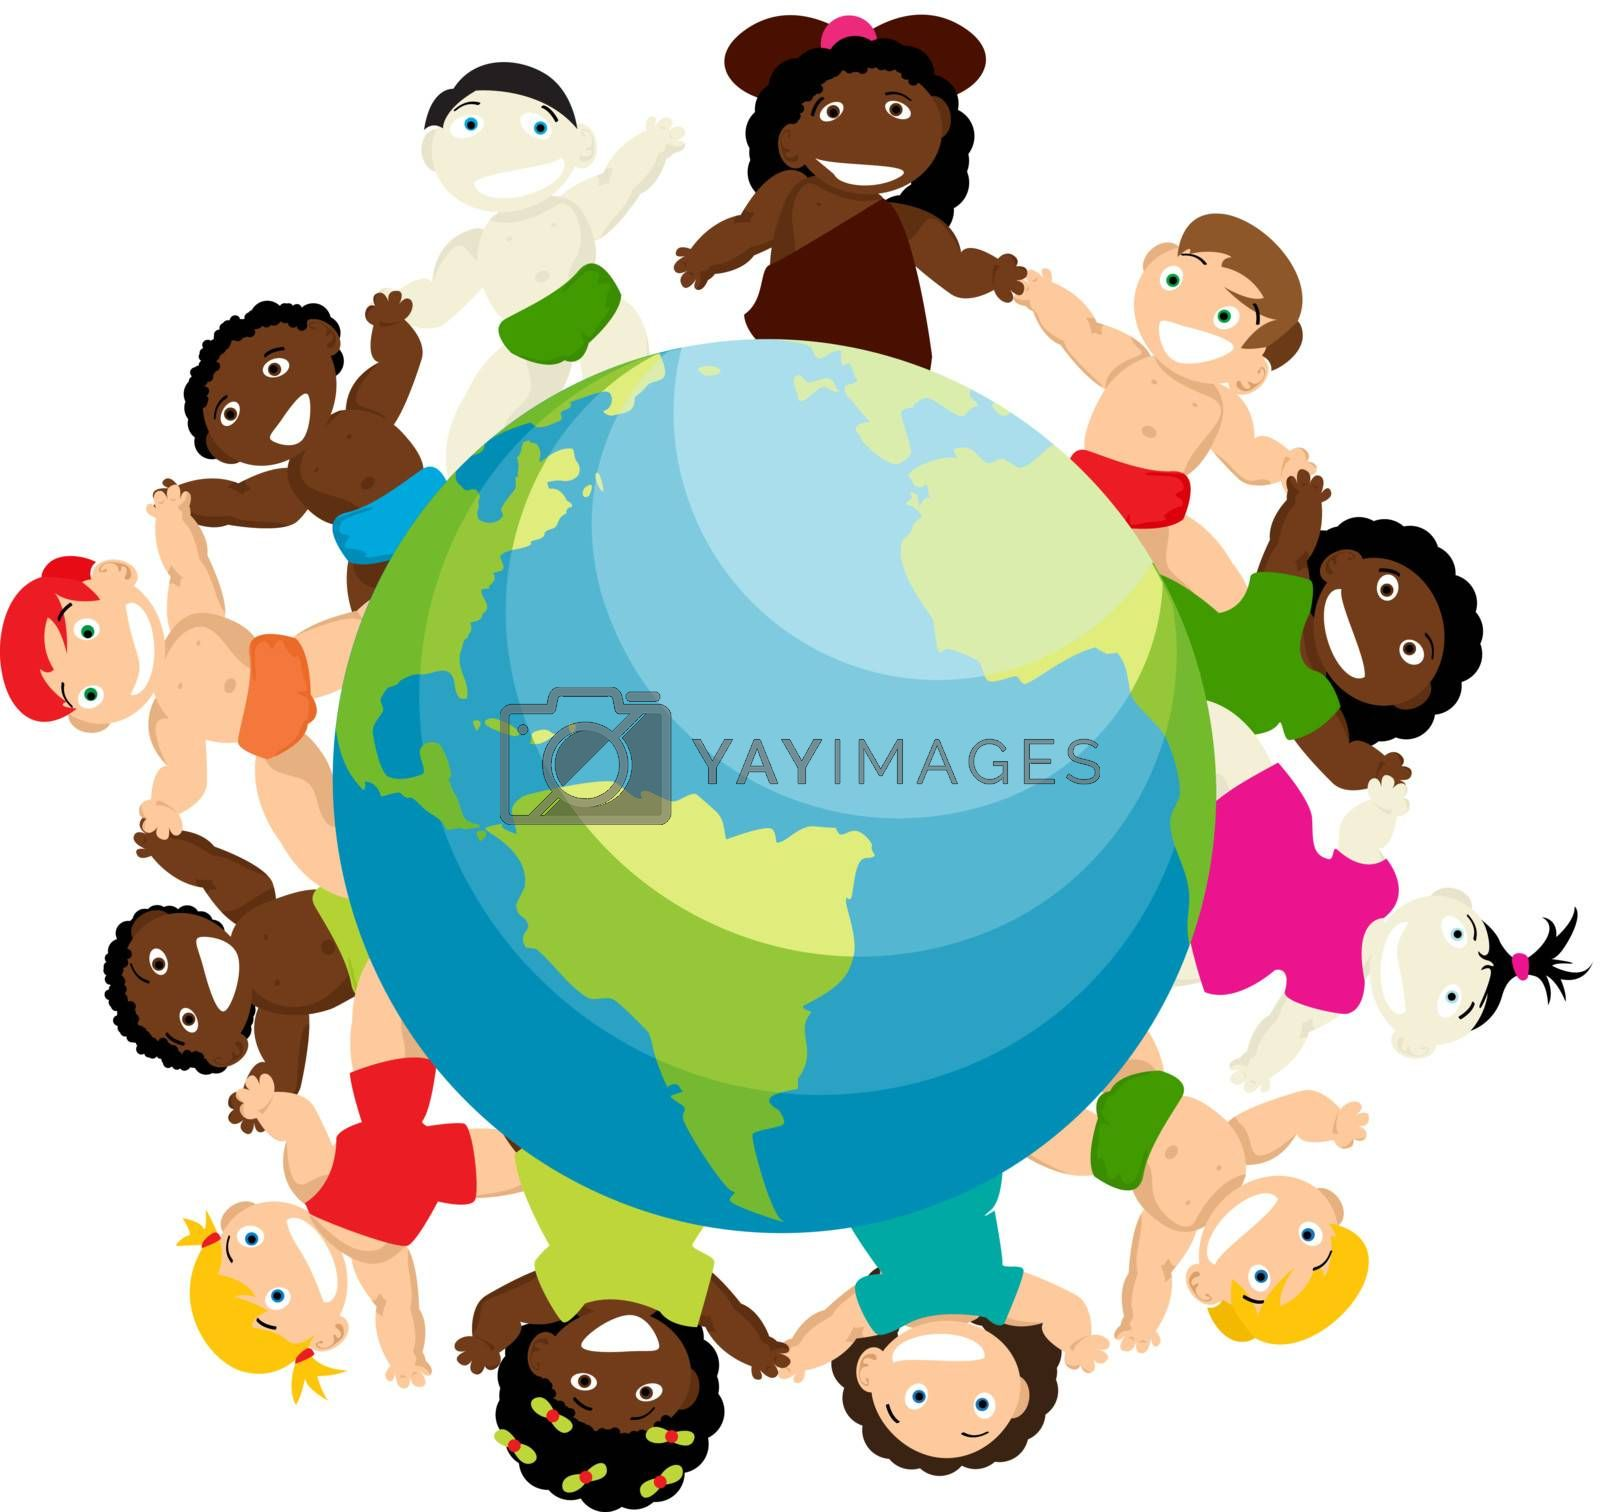 Conceptual anti-racicsm illustration with new born babies of different ethnicitiy arround the globe